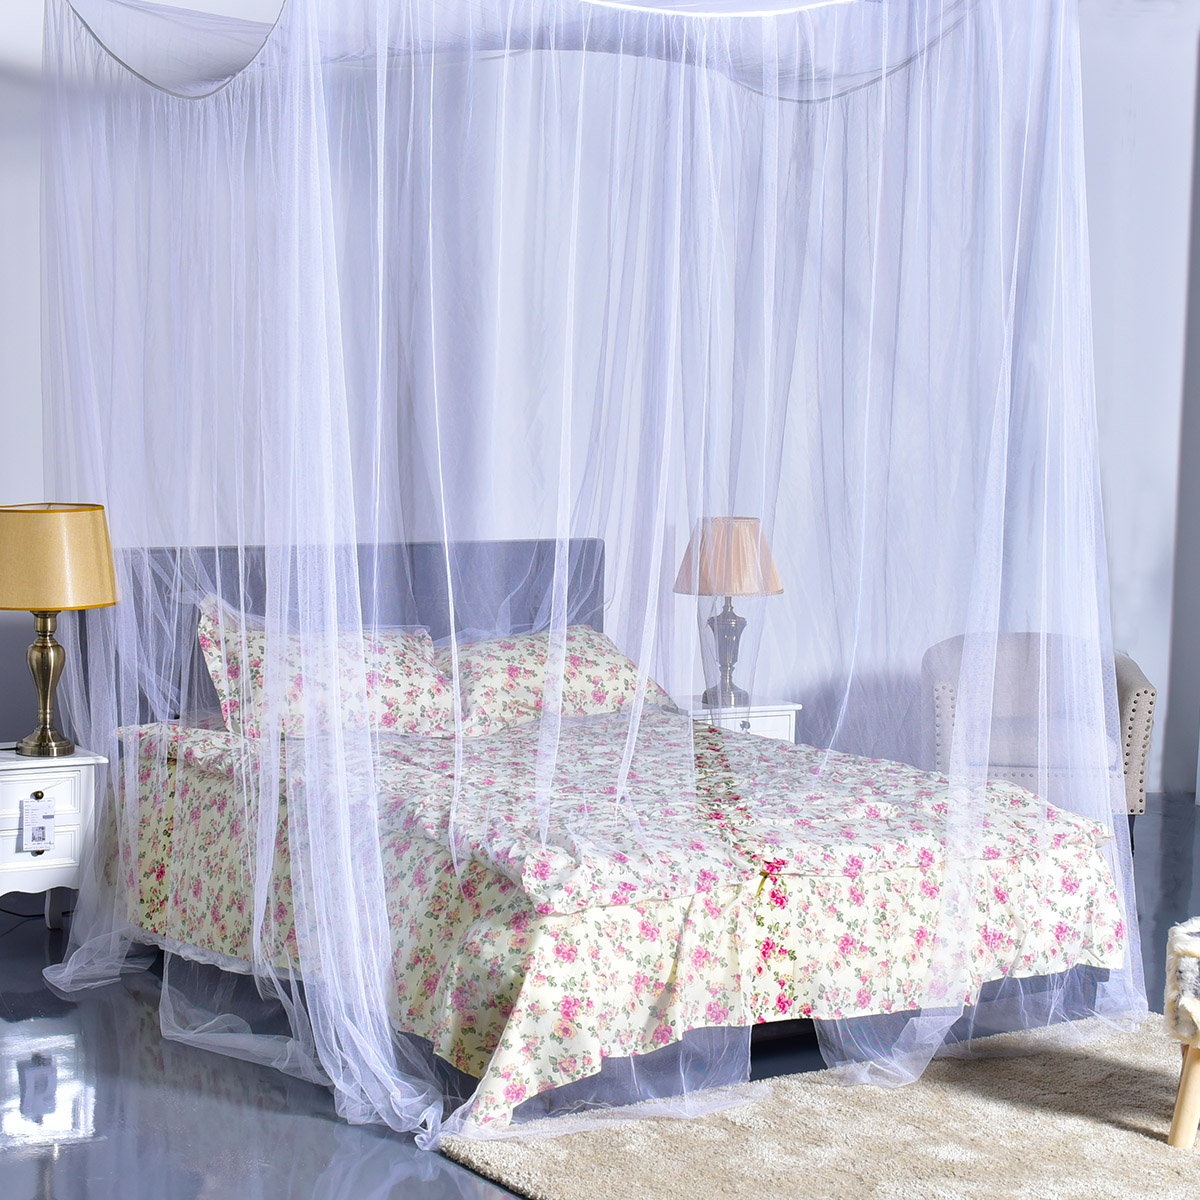 4 Corner Post Bed Canopy Mosquito Net Full Queen King Size Netting Bedding White & 4 Corner Post Bed Canopy Mosquito Net Full Queen King Size Netting ...